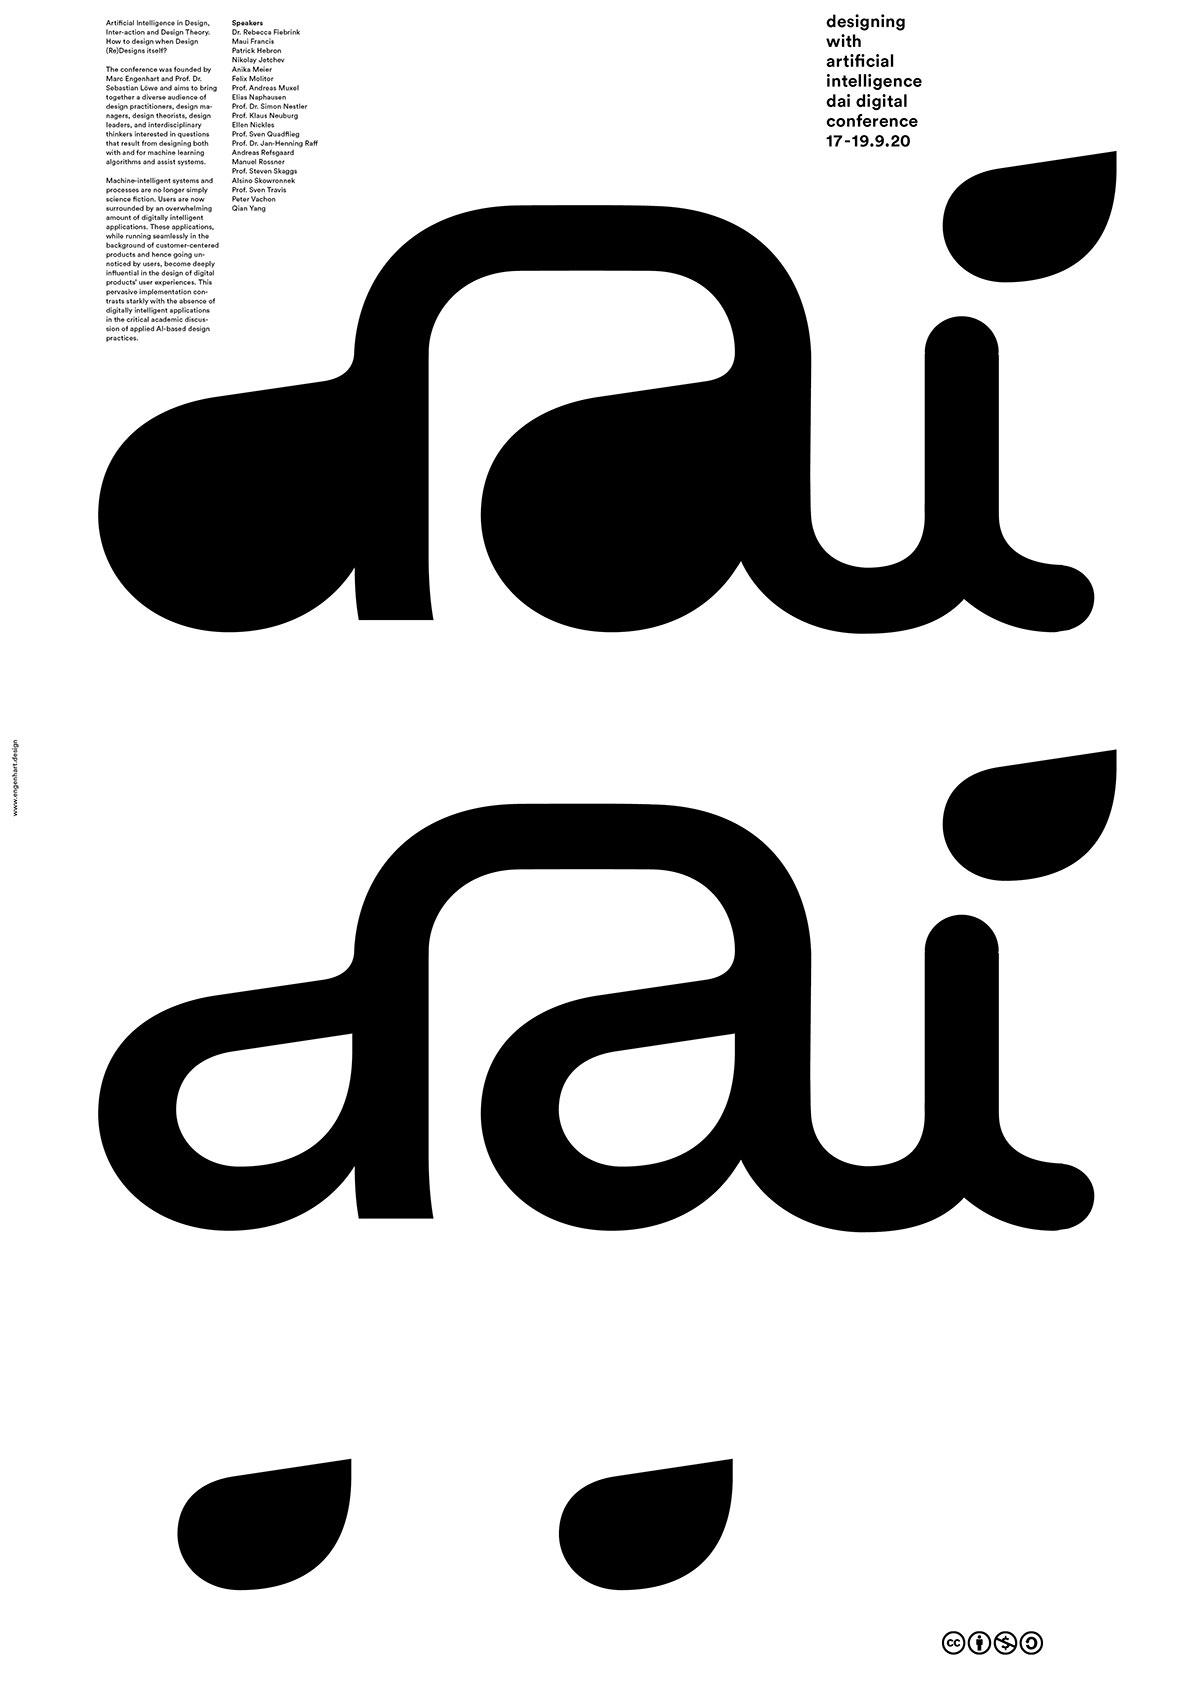 dai—Designing with Artificial Intelligence Conference